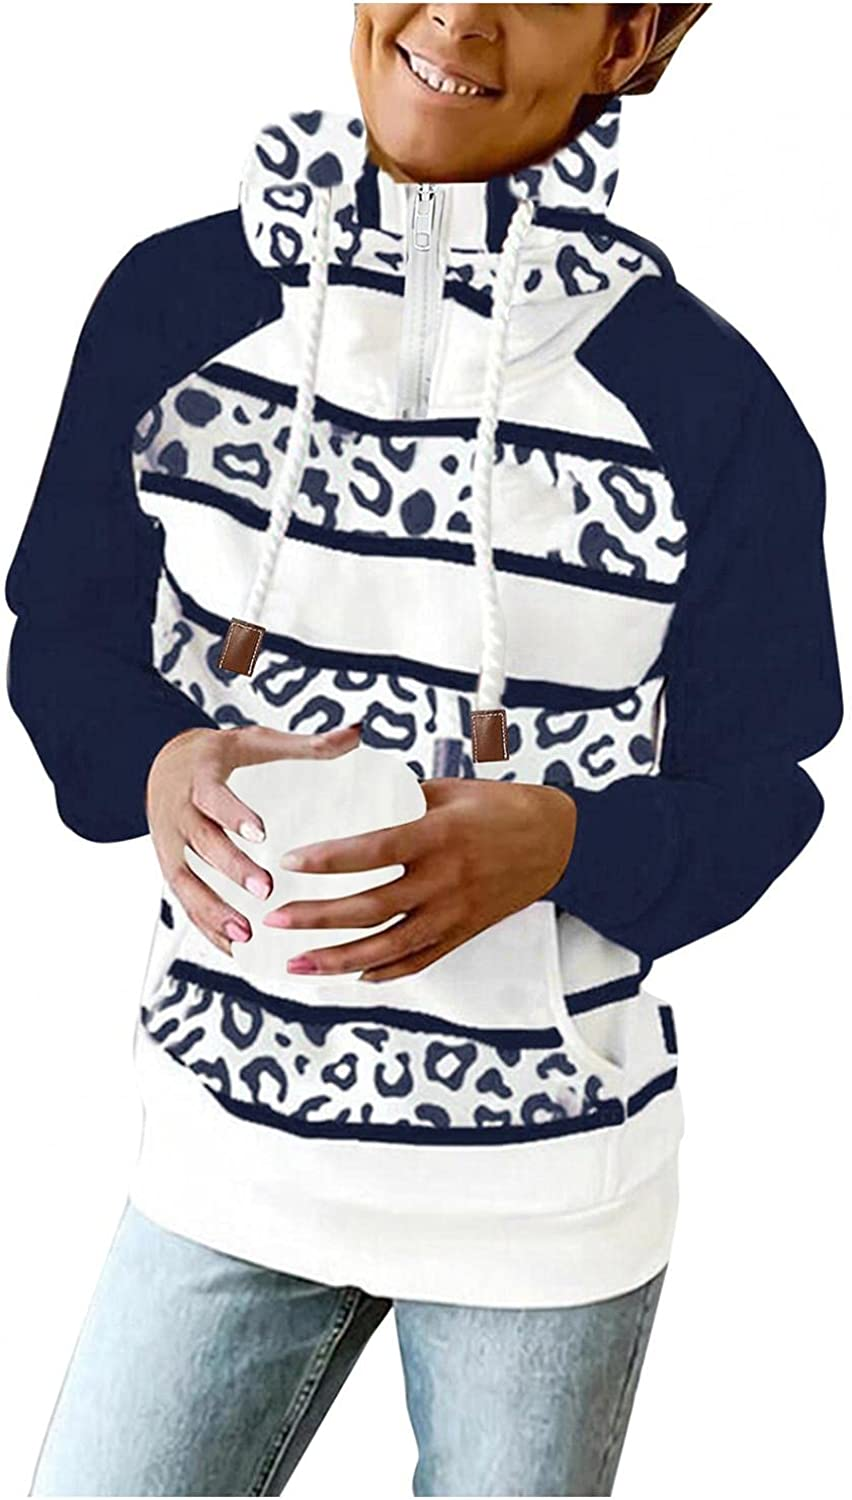 UOCUFY Hoodies for Women Zip Up,Womens 1/4 Zipper Sweatshirts Striped Printed Long Sleeve Pullover Plus Size Fall Tops